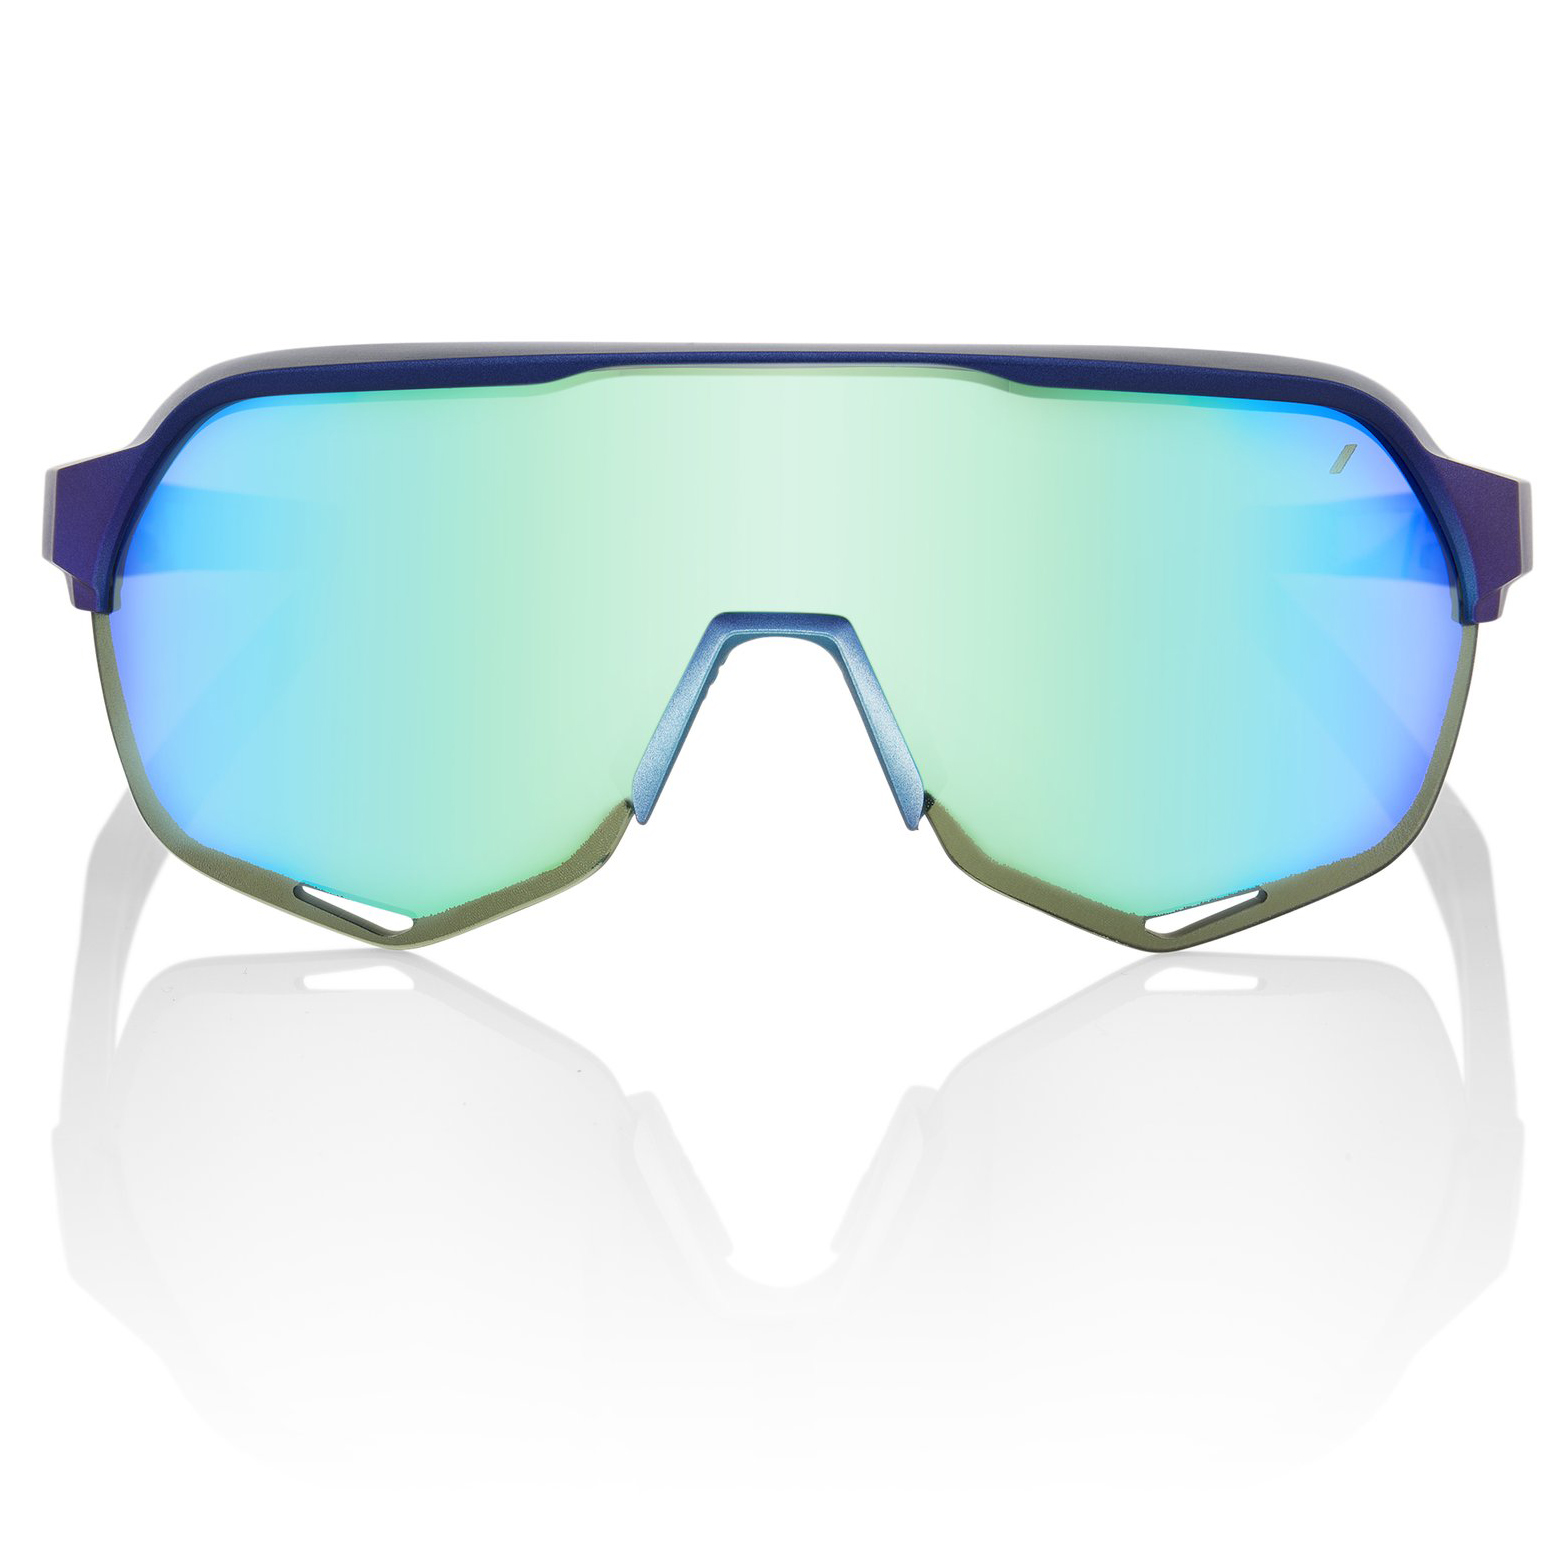 Image of 100% S2 Multilayer Mirror Lens Glasses - Matte Metallic Into the Fade/Blue Topaz + Clear